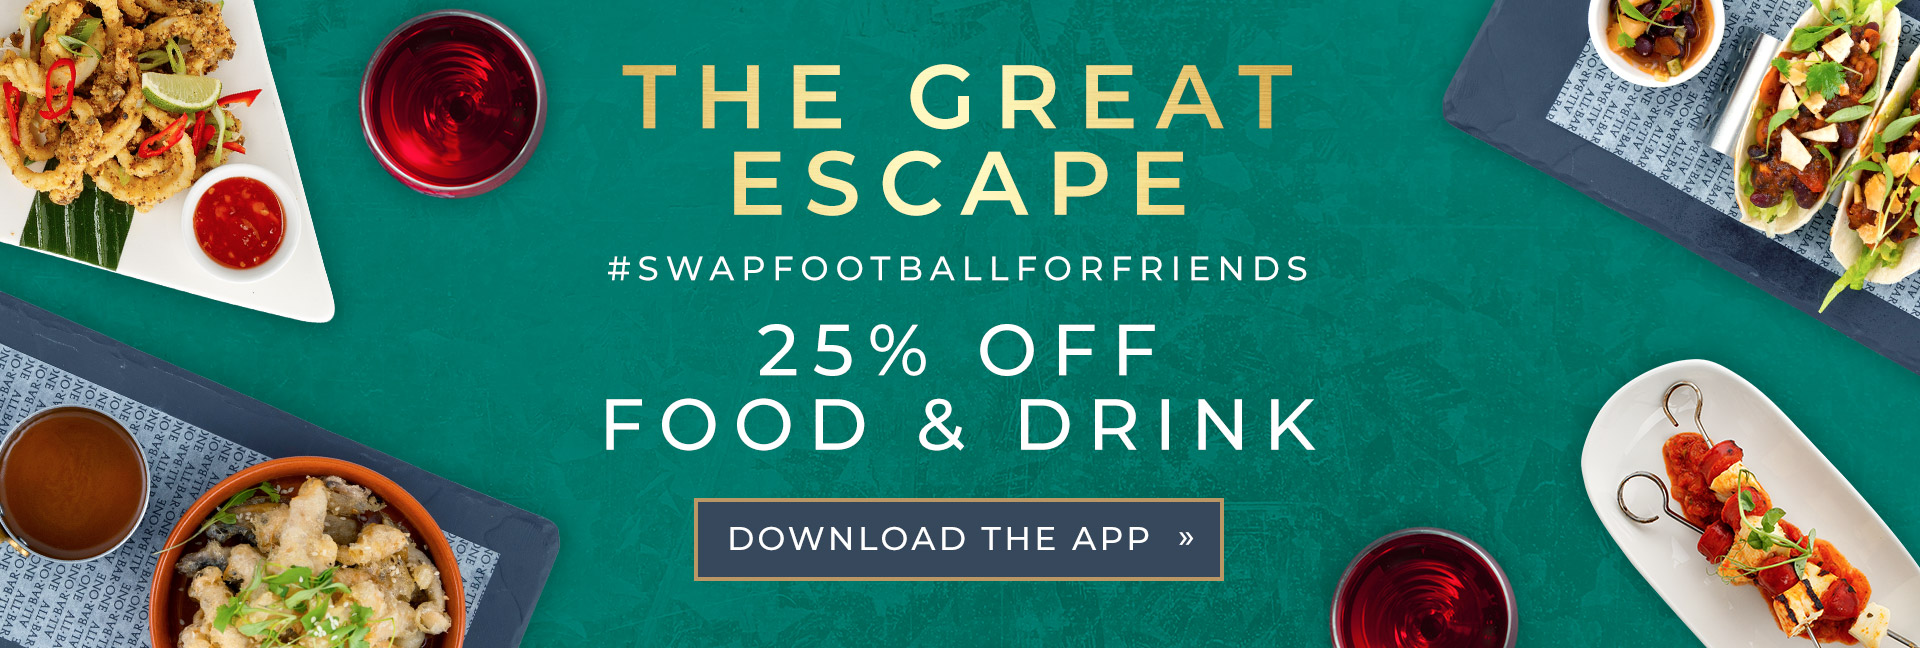 The Great Escape at All Bar One